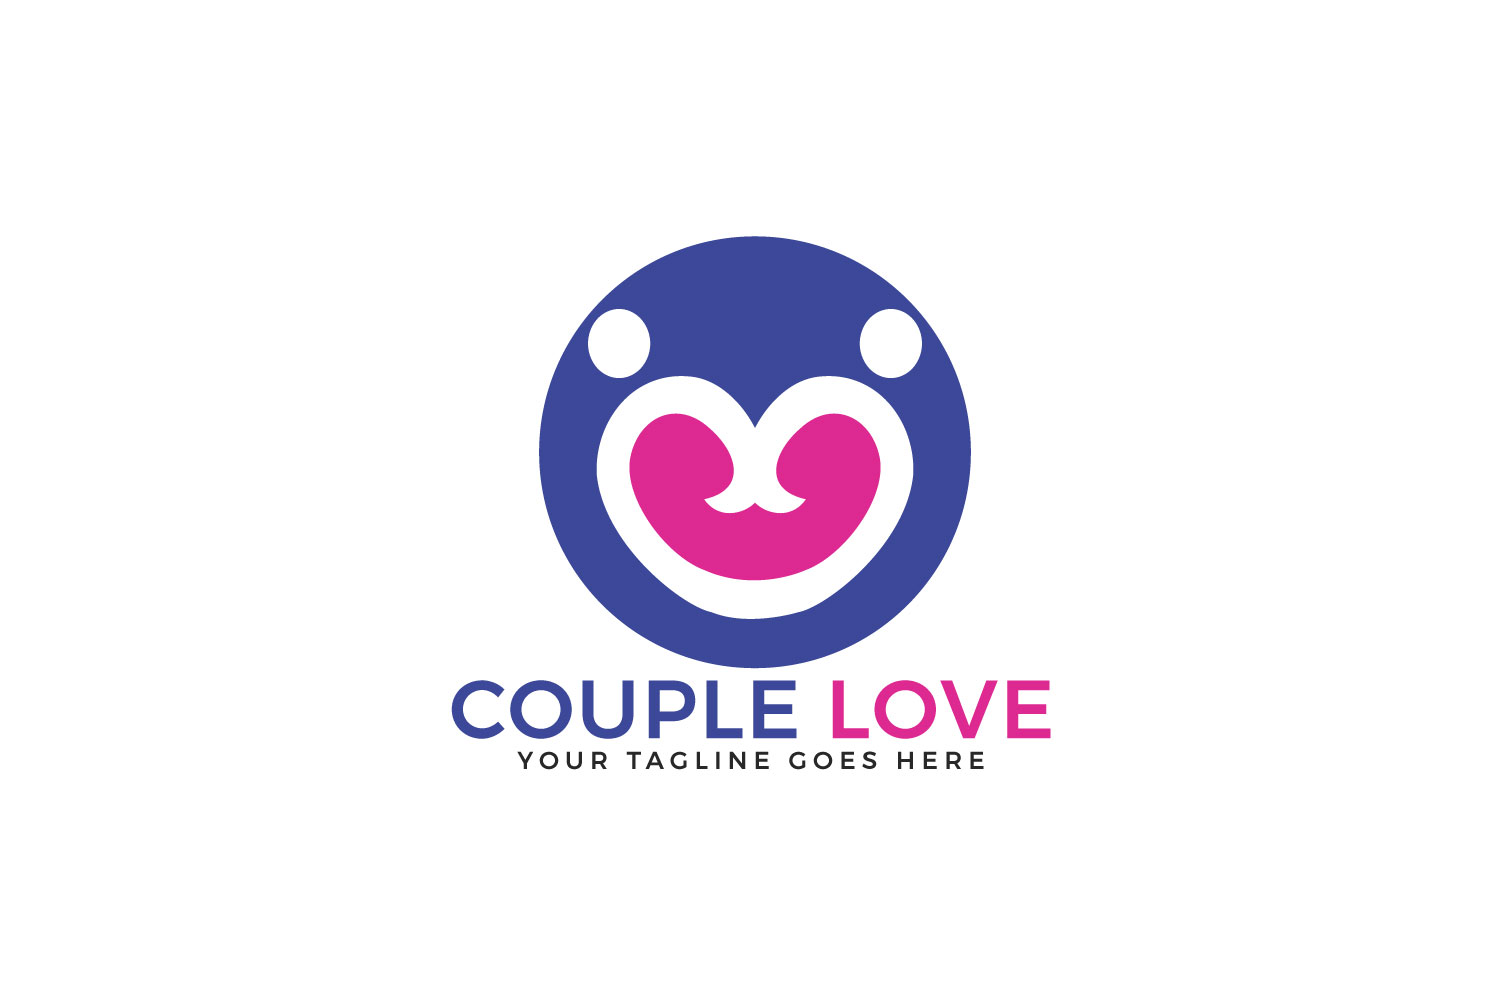 Couple Love Vector Logo Design. example image 1